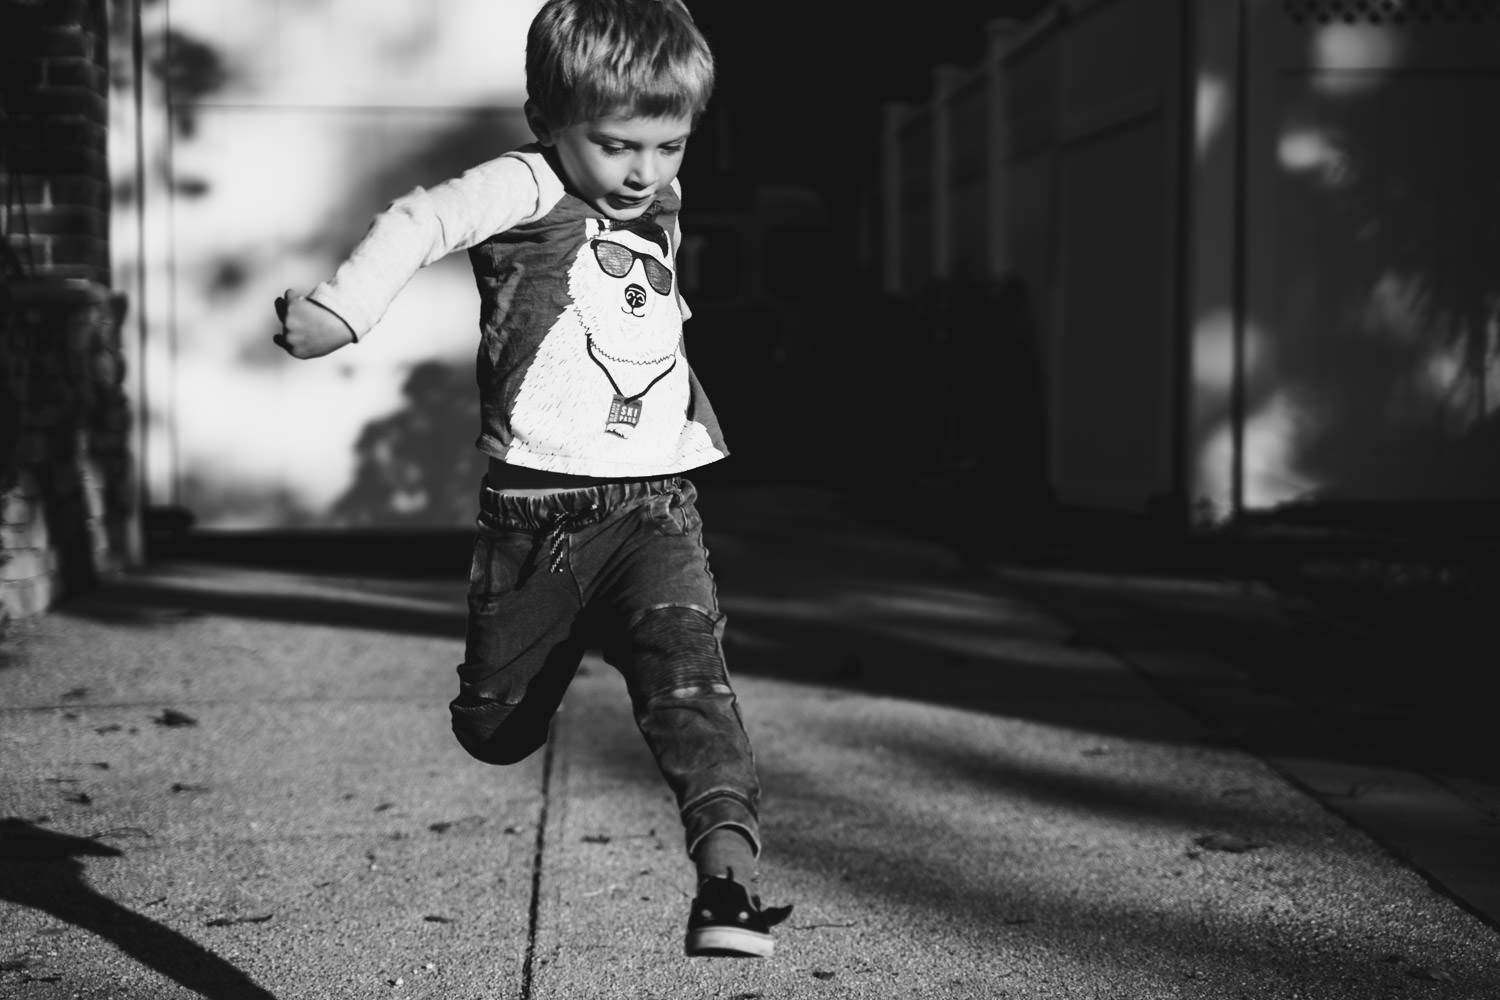 A little boy jumps in his driveway.